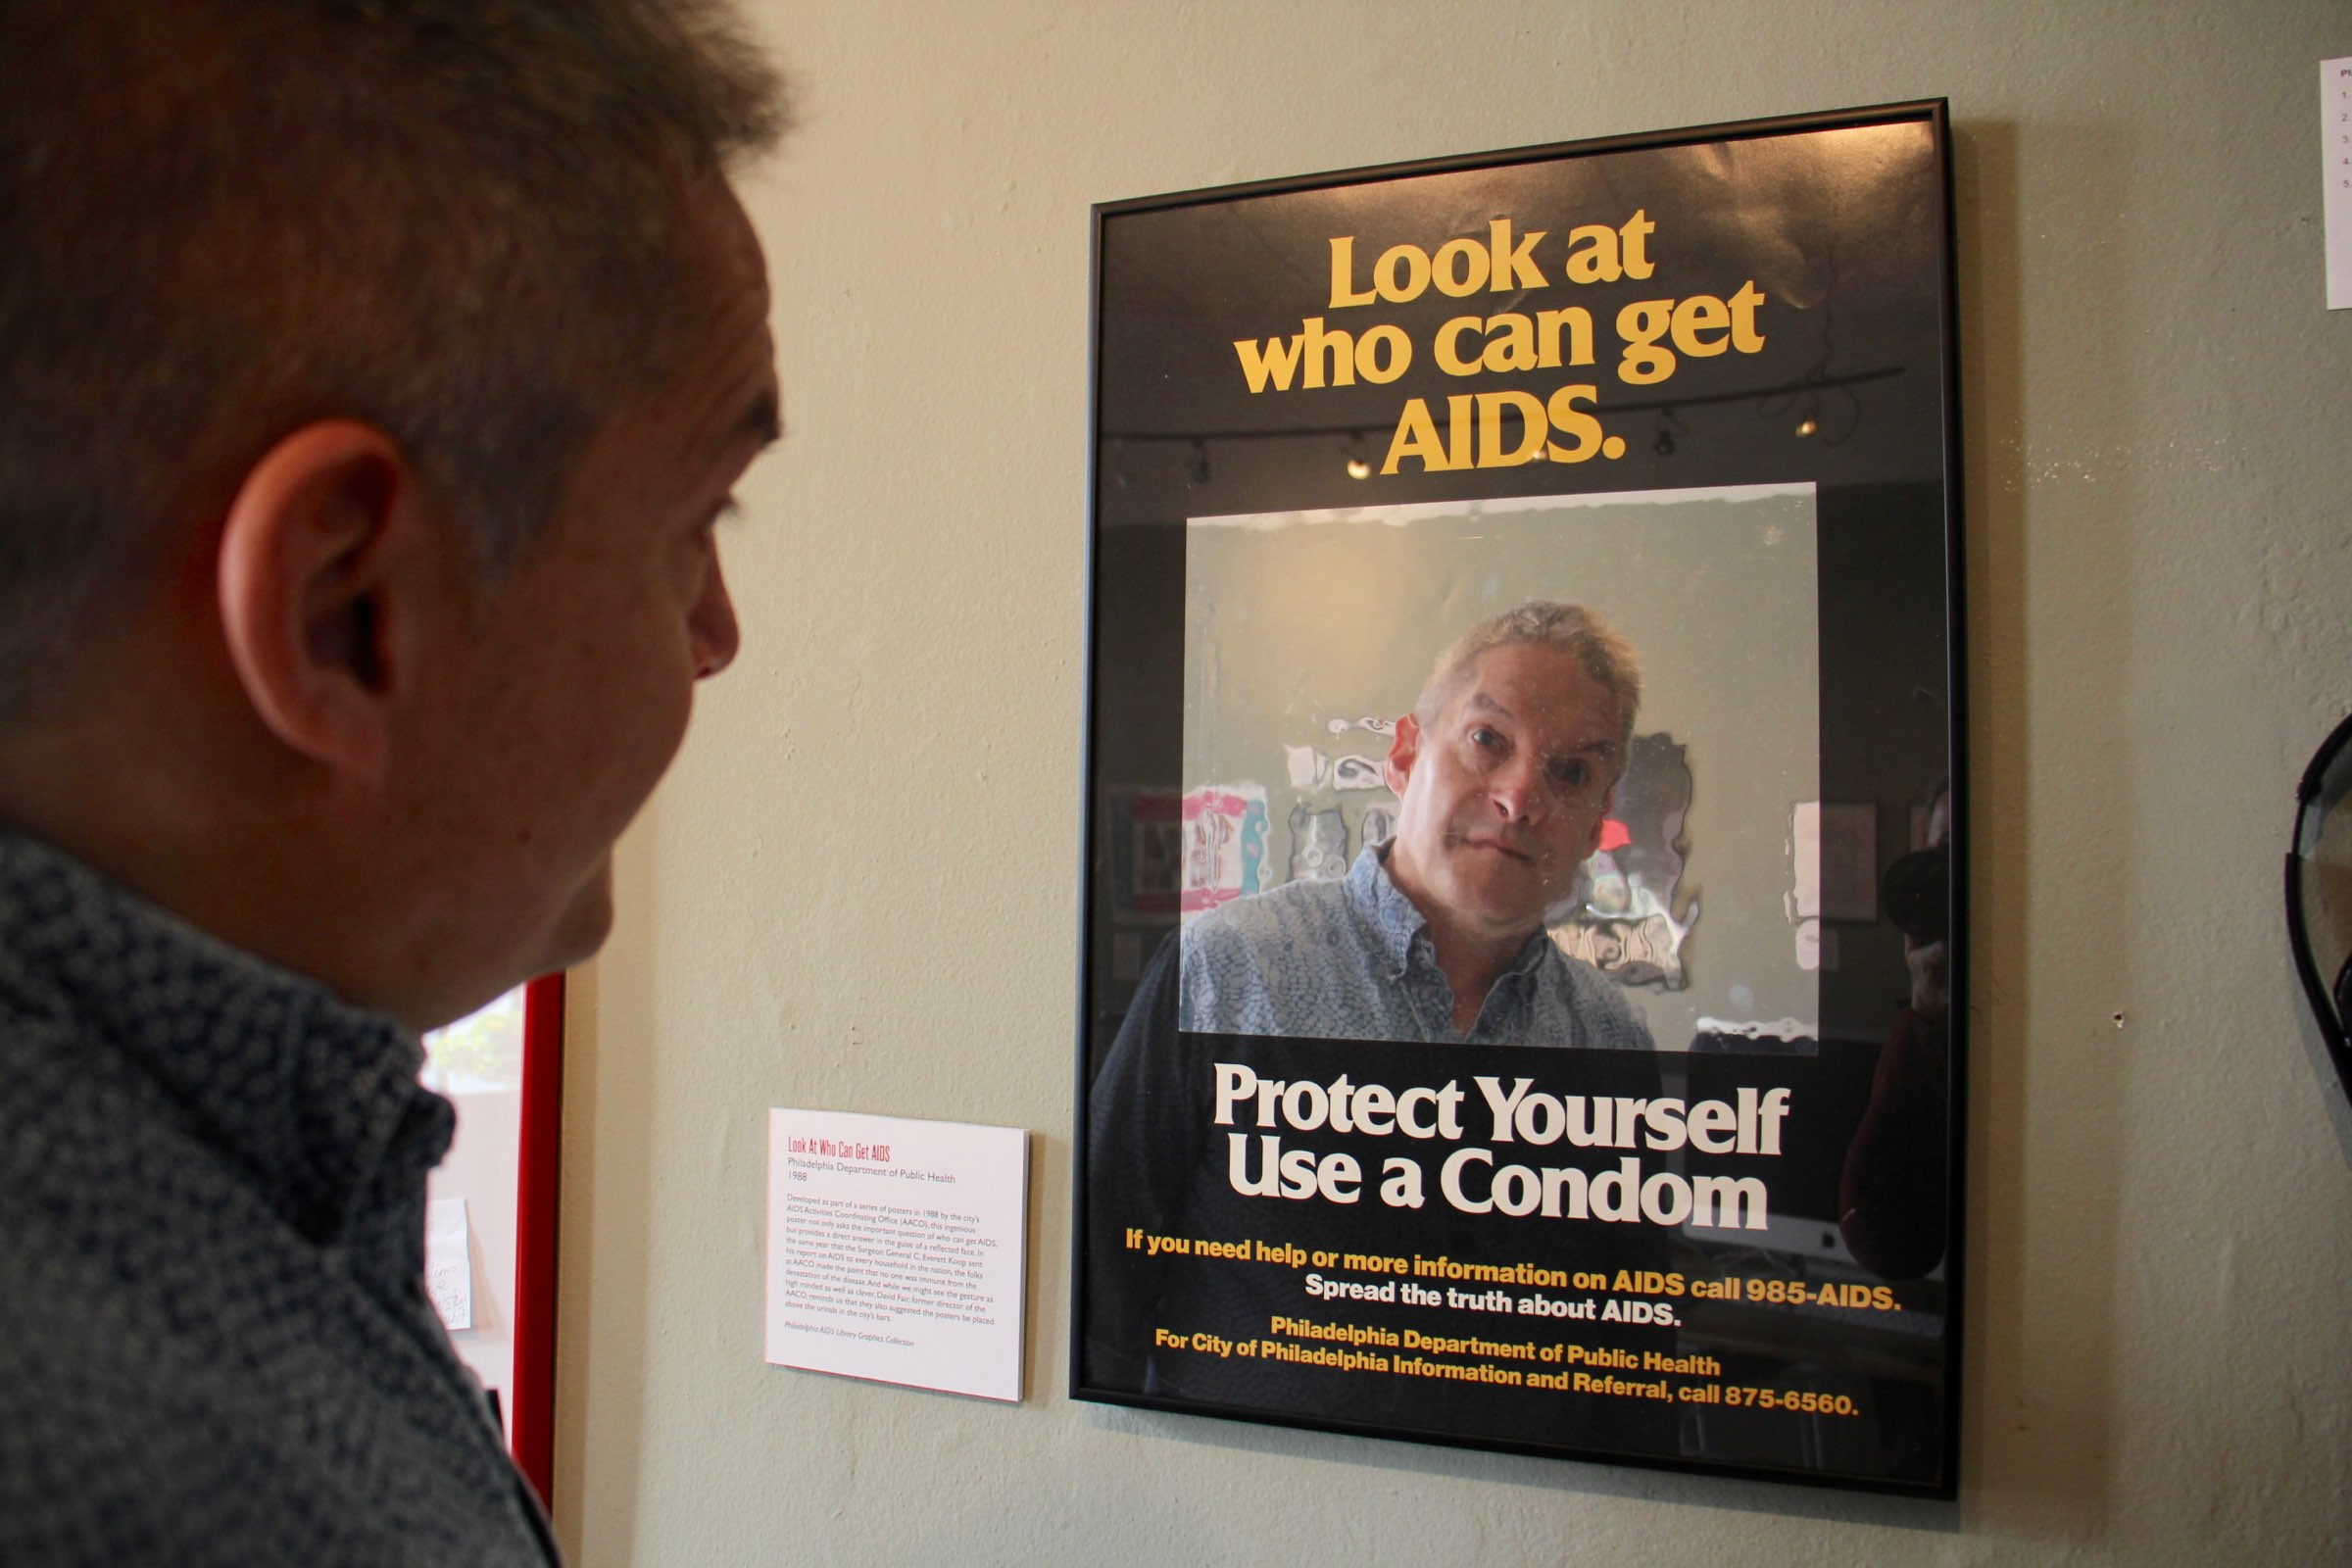 Christopher Bartlett, executive director of the William Way LGBT Center. gazes omtp the reflective surface of a 1988 AIDS awaremess poster.